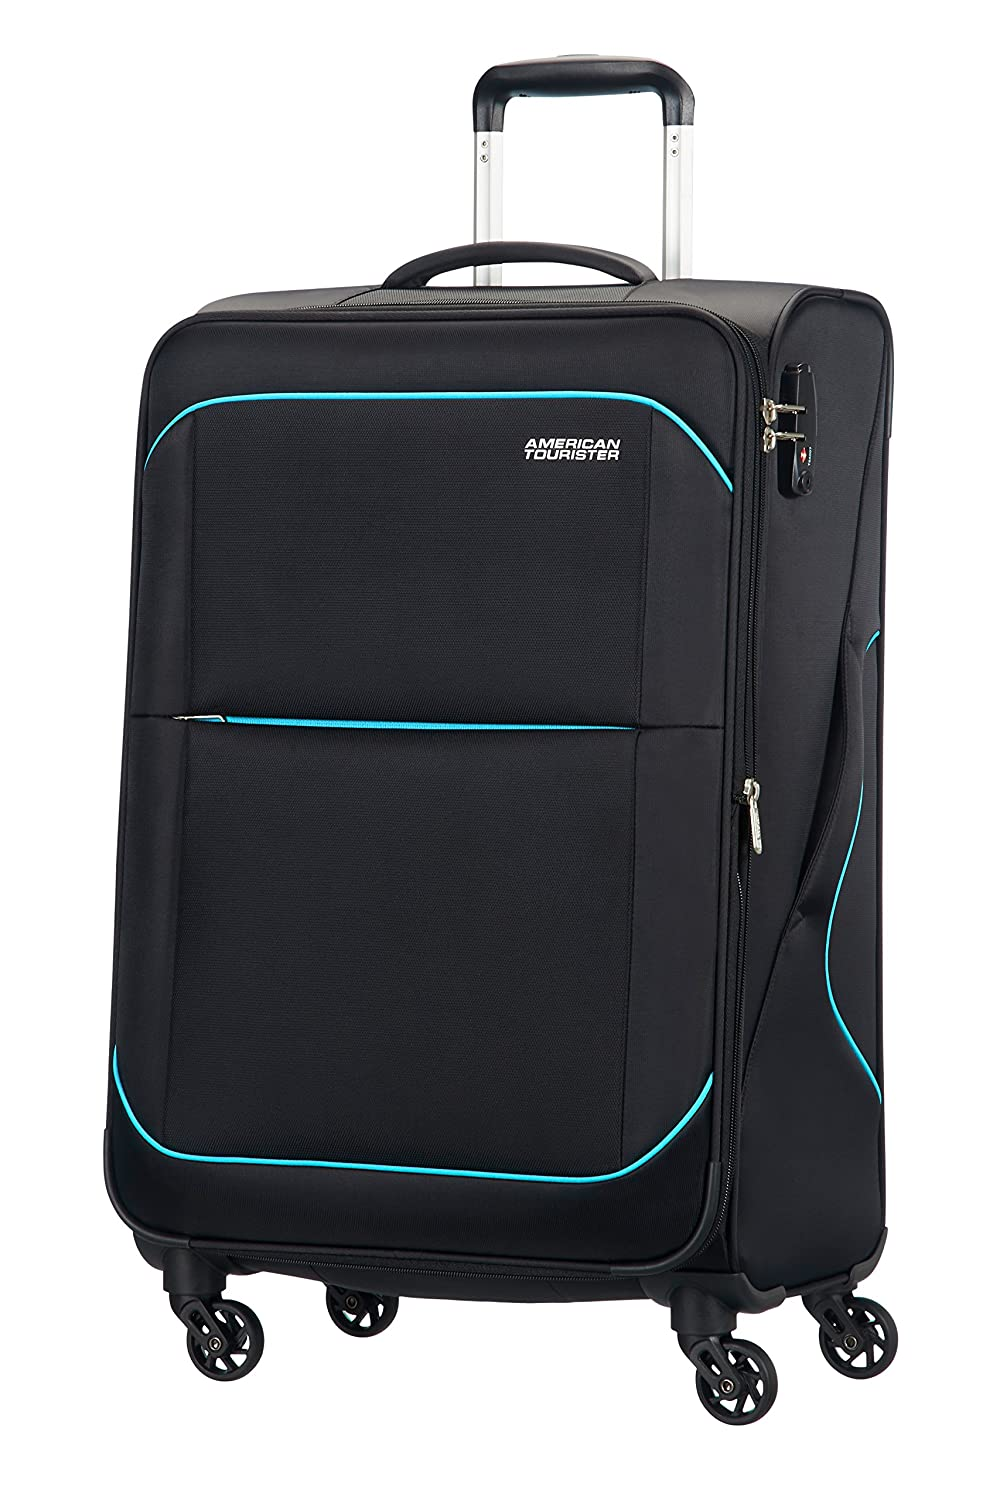 American Tourister Sunbeam spinner ruedas  equipaje de mano negro after dark